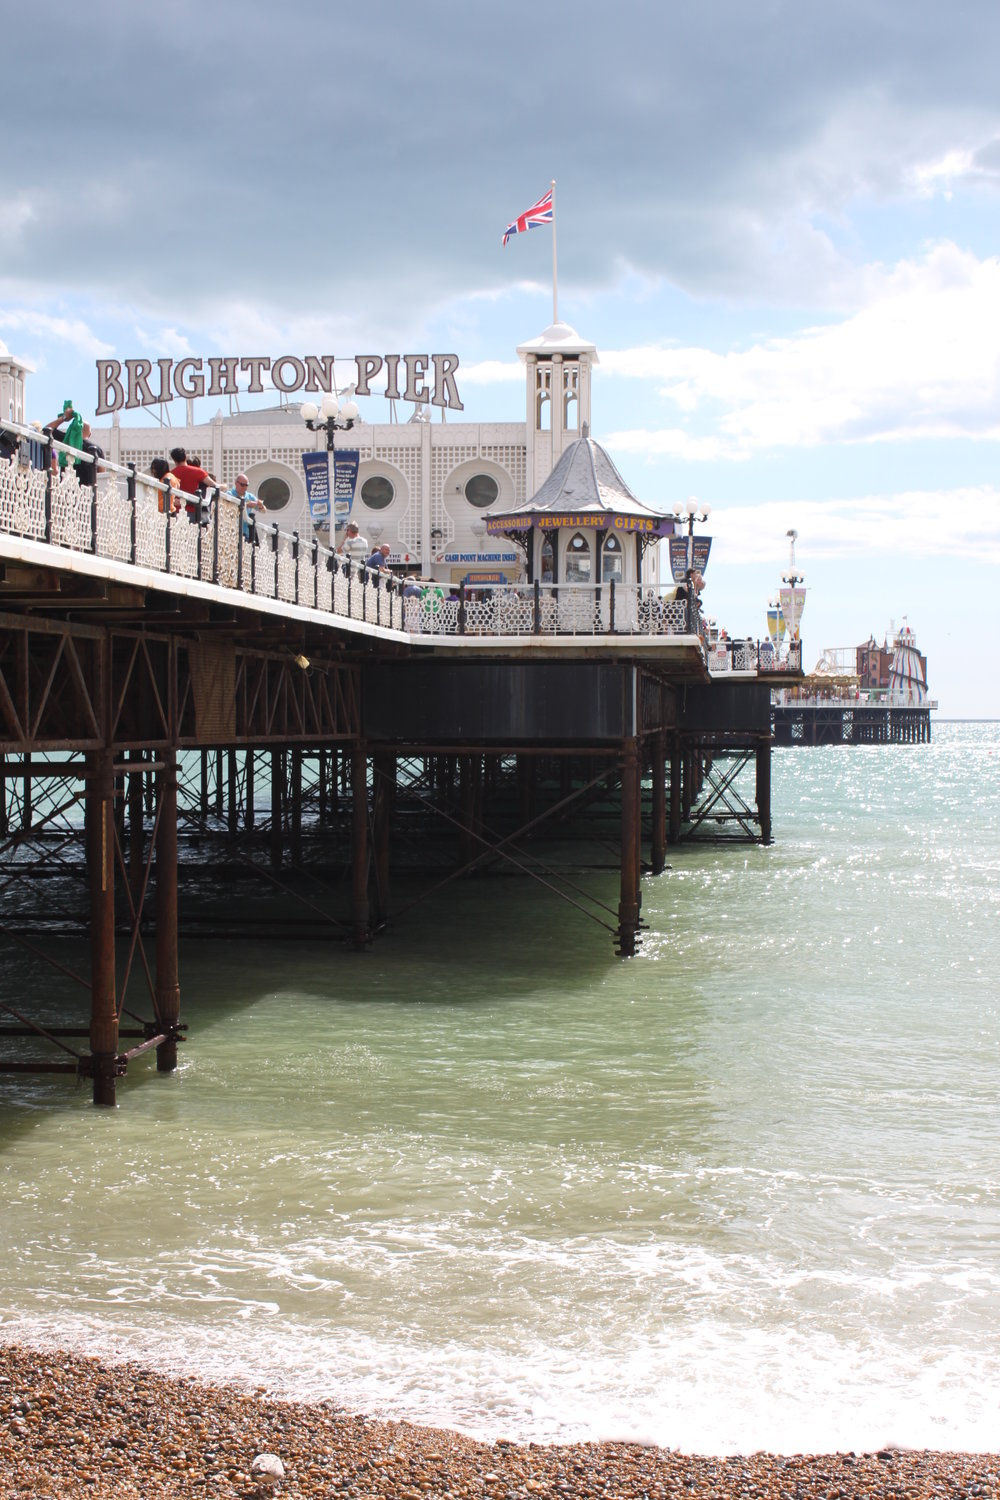 Brighton Pier, a popular destination in the city.